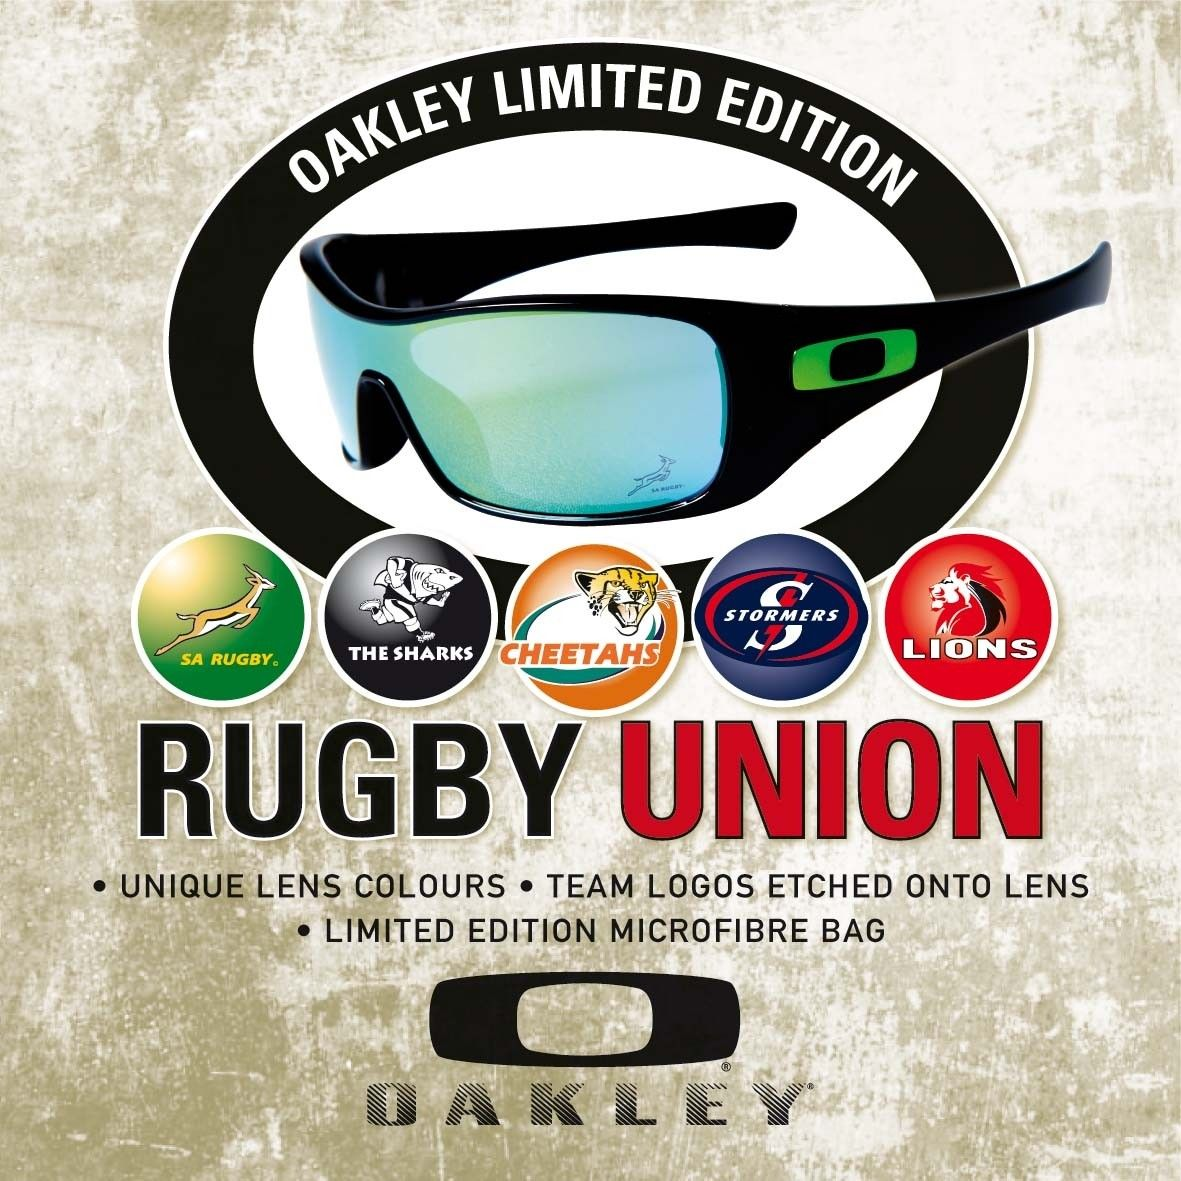 Oakley Antix South Africa - oakleyrugbyrange110304.jpg